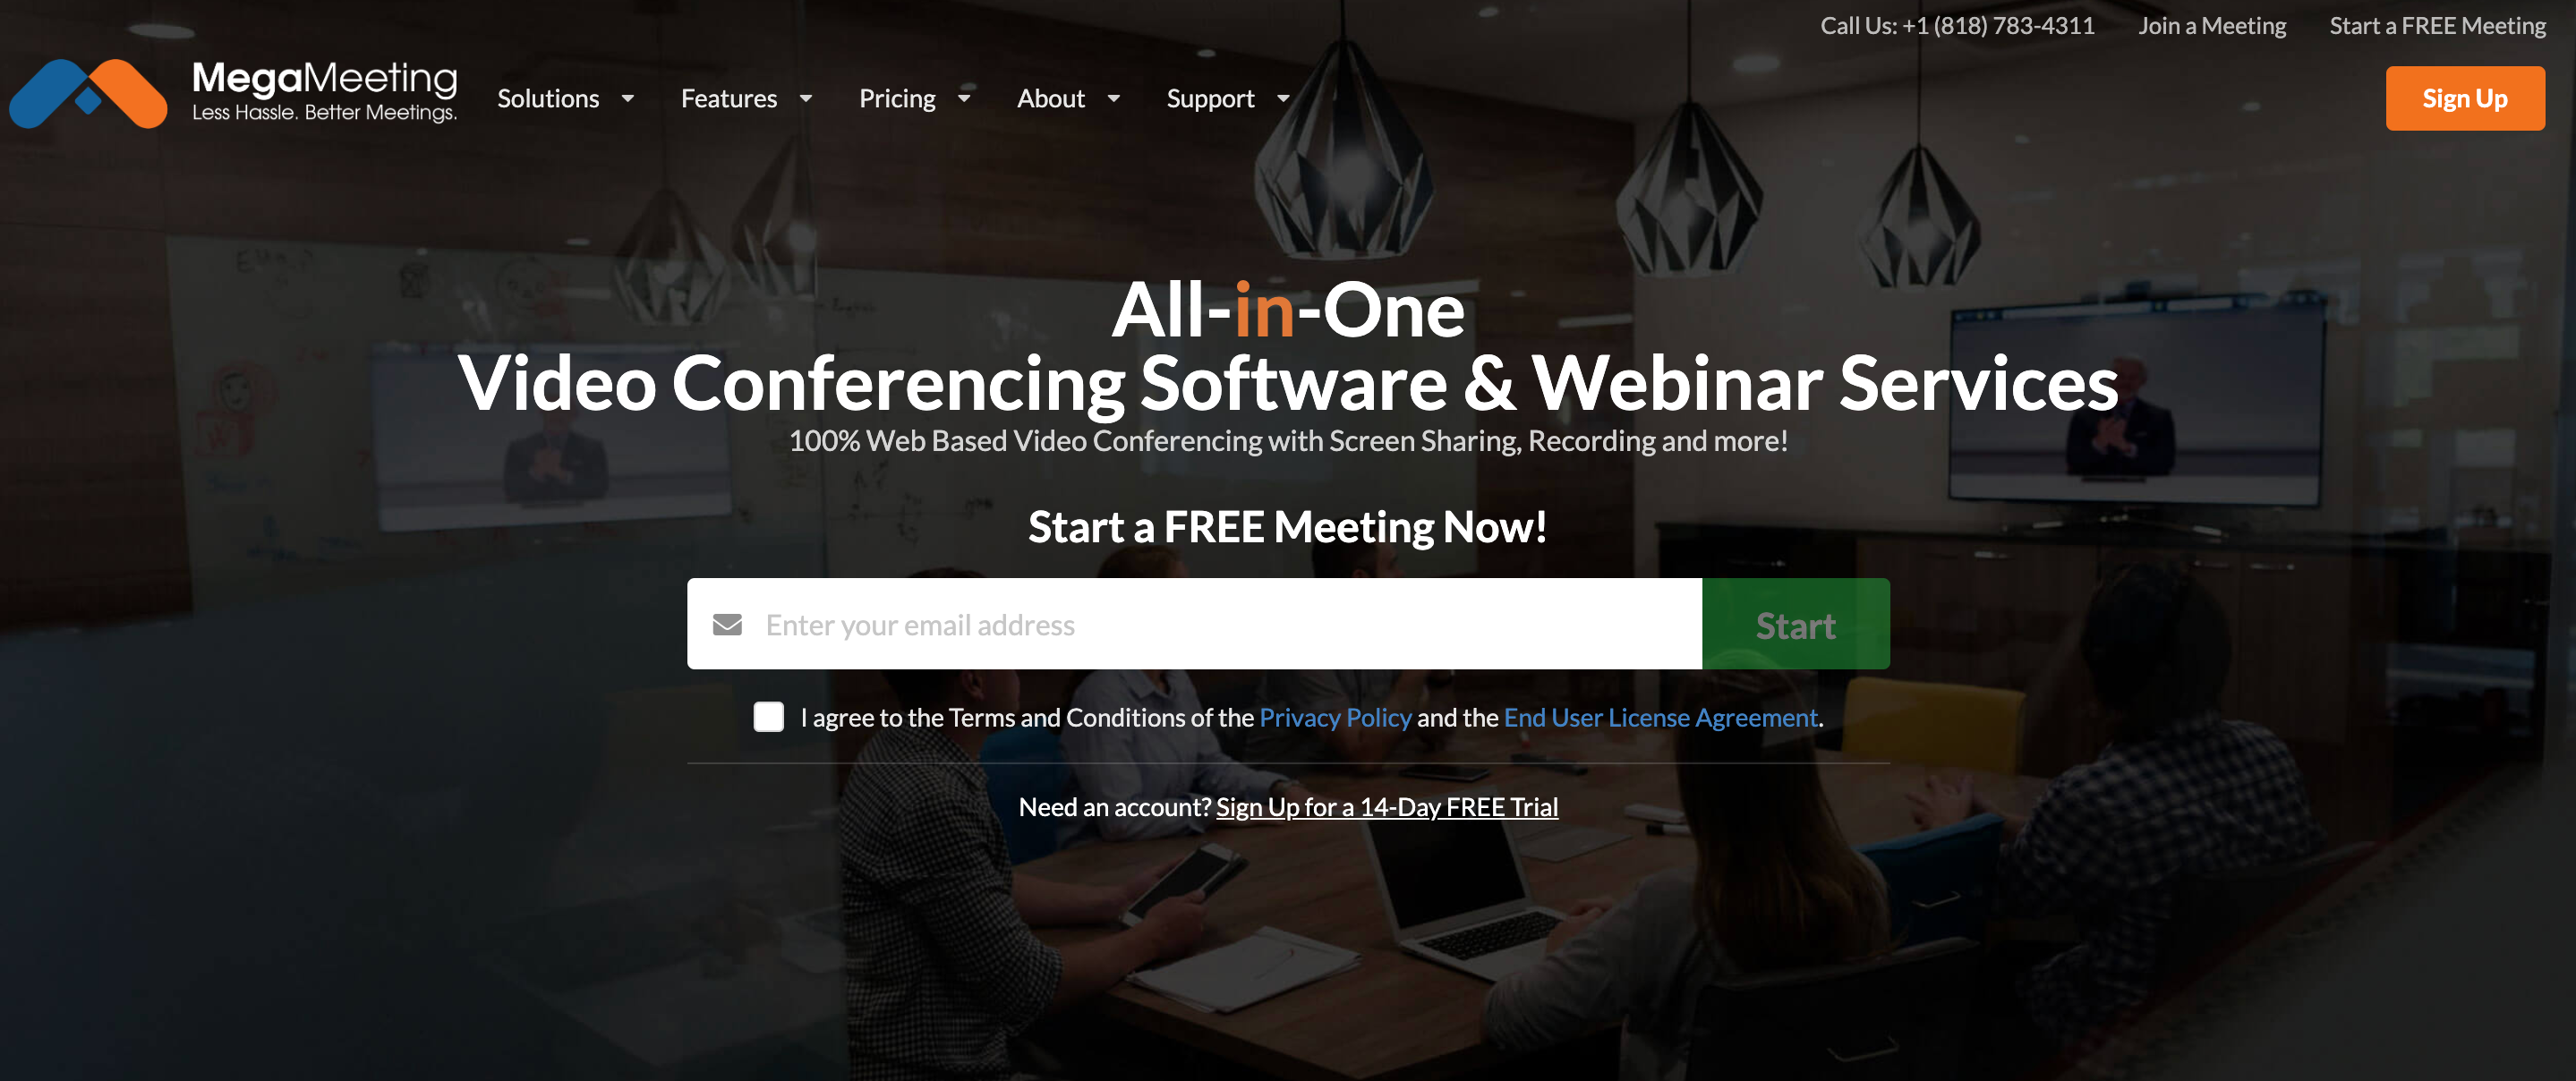 MegaMeeting- Web Conferencing